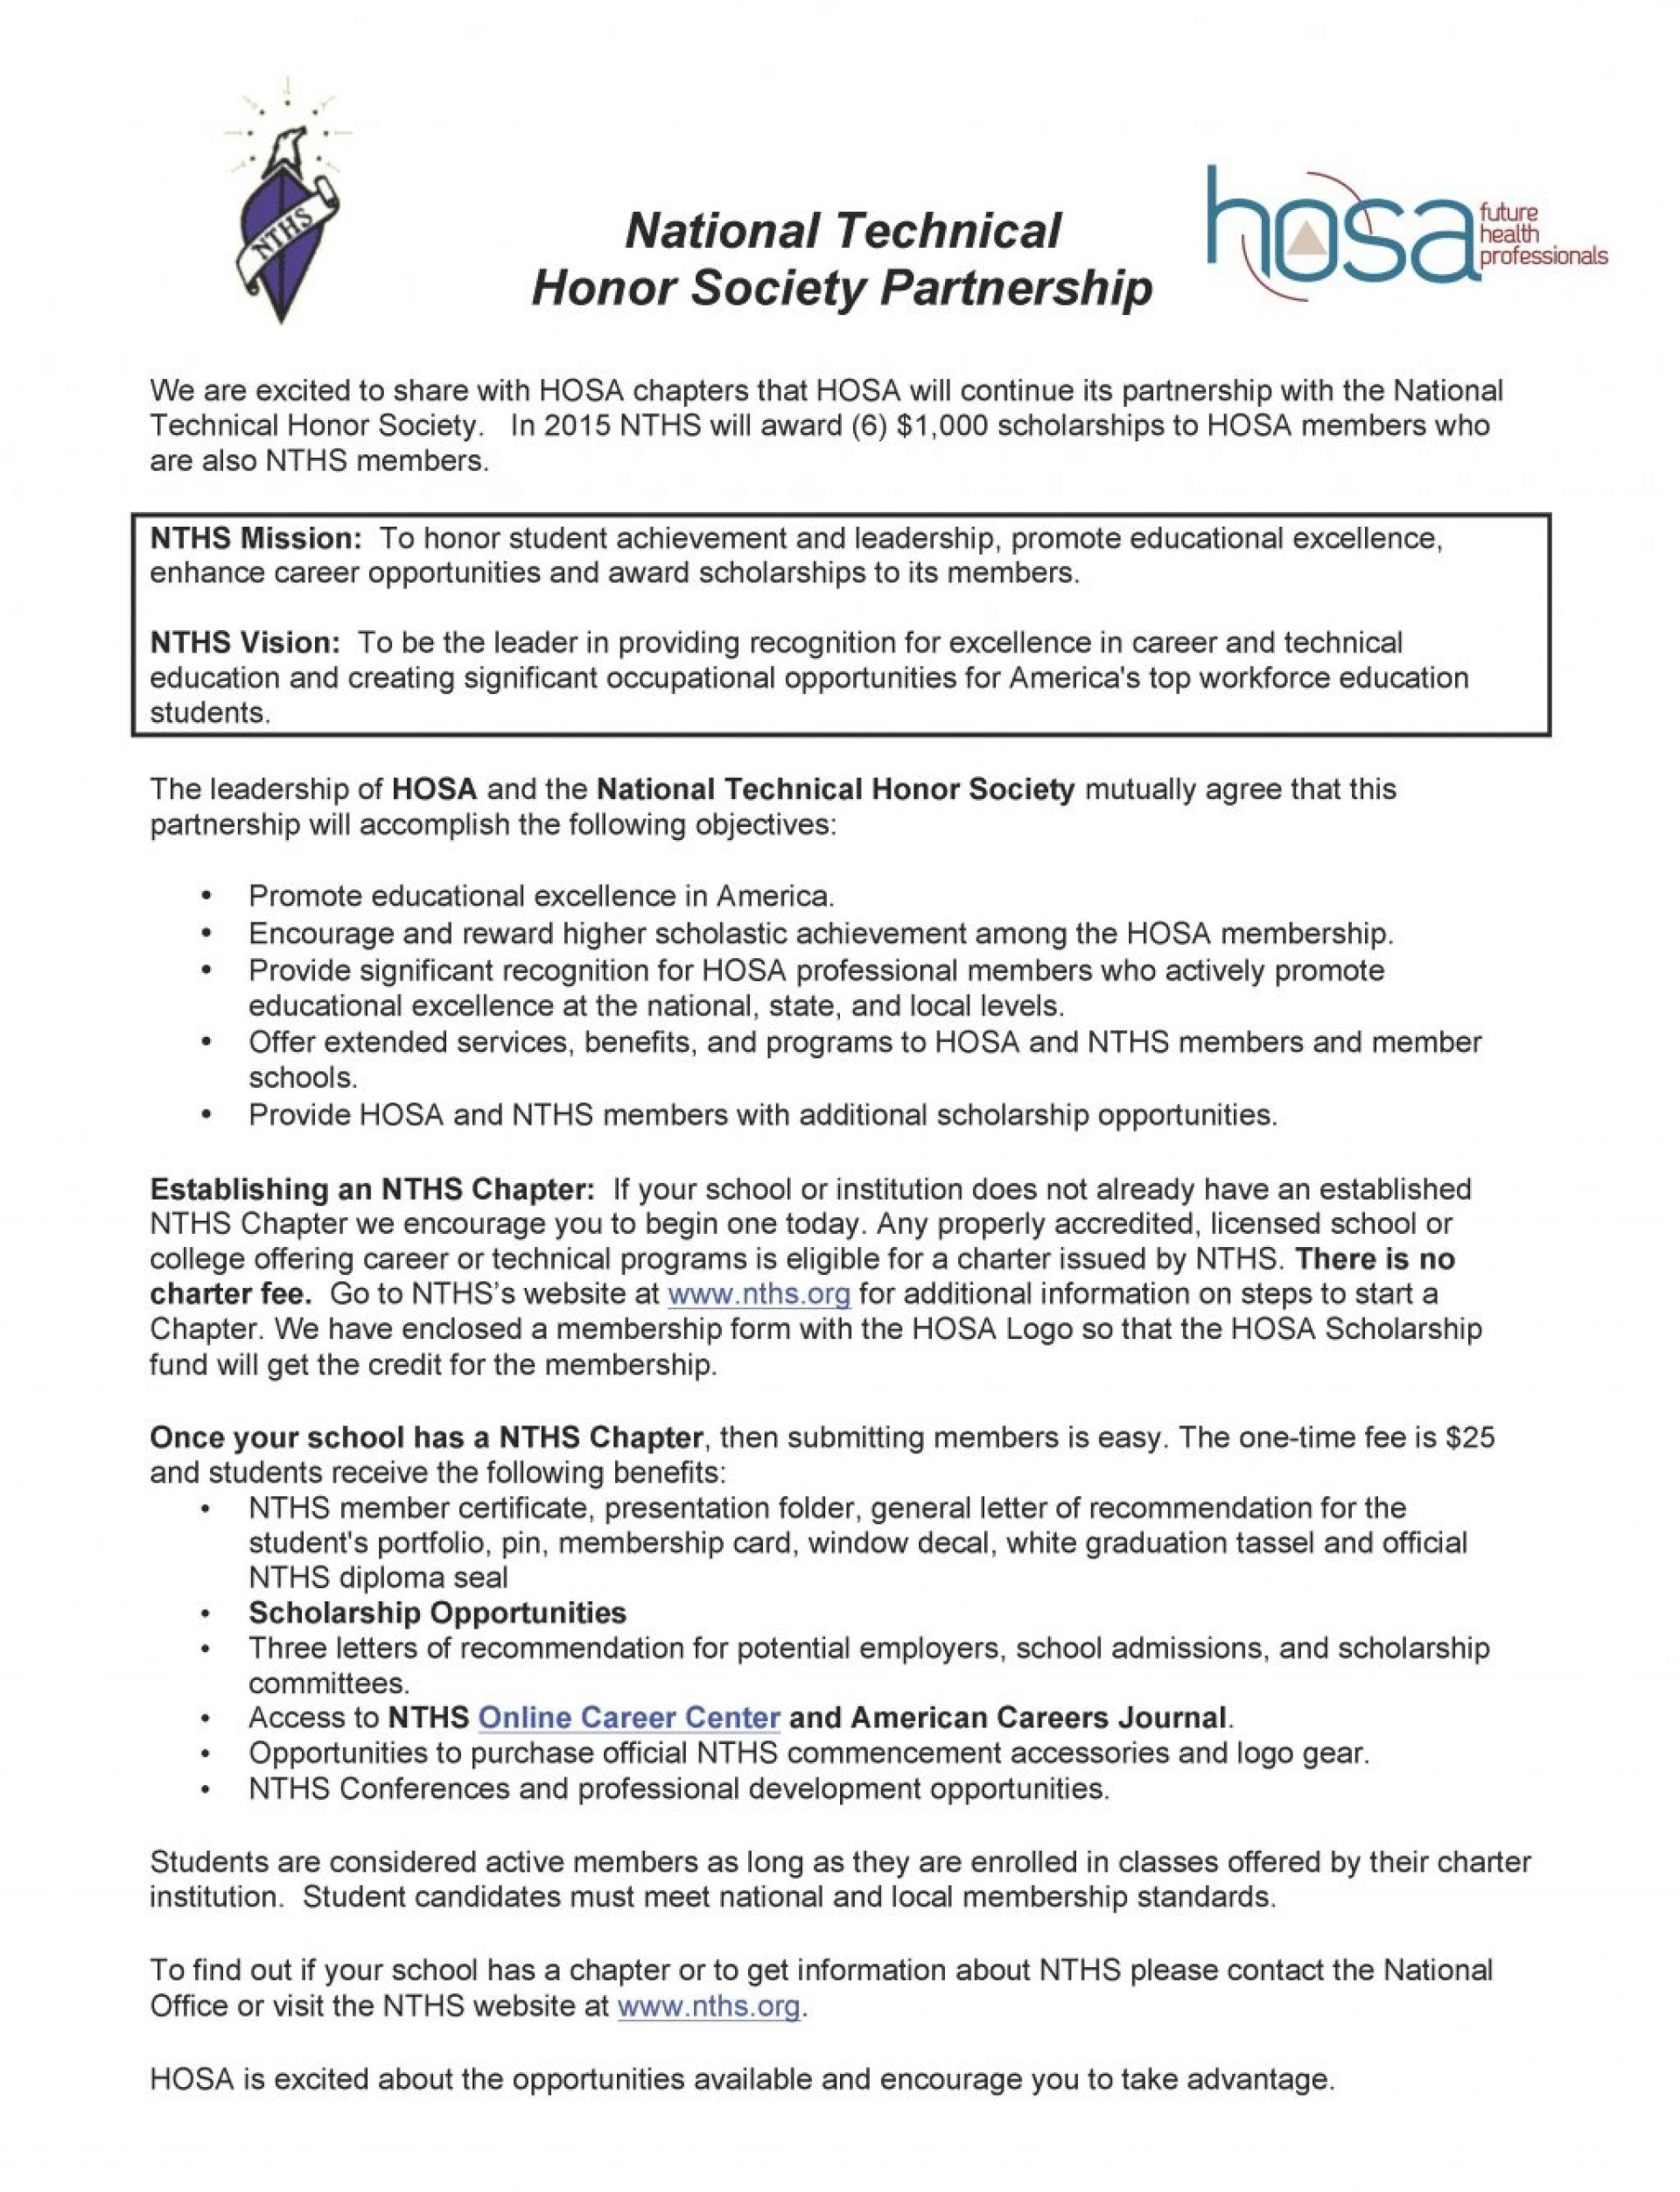 007 National Junior Honor Society Essay Example Cover Letter Nths Page 1 Template Outstanding Application Structure High School Examples 1920